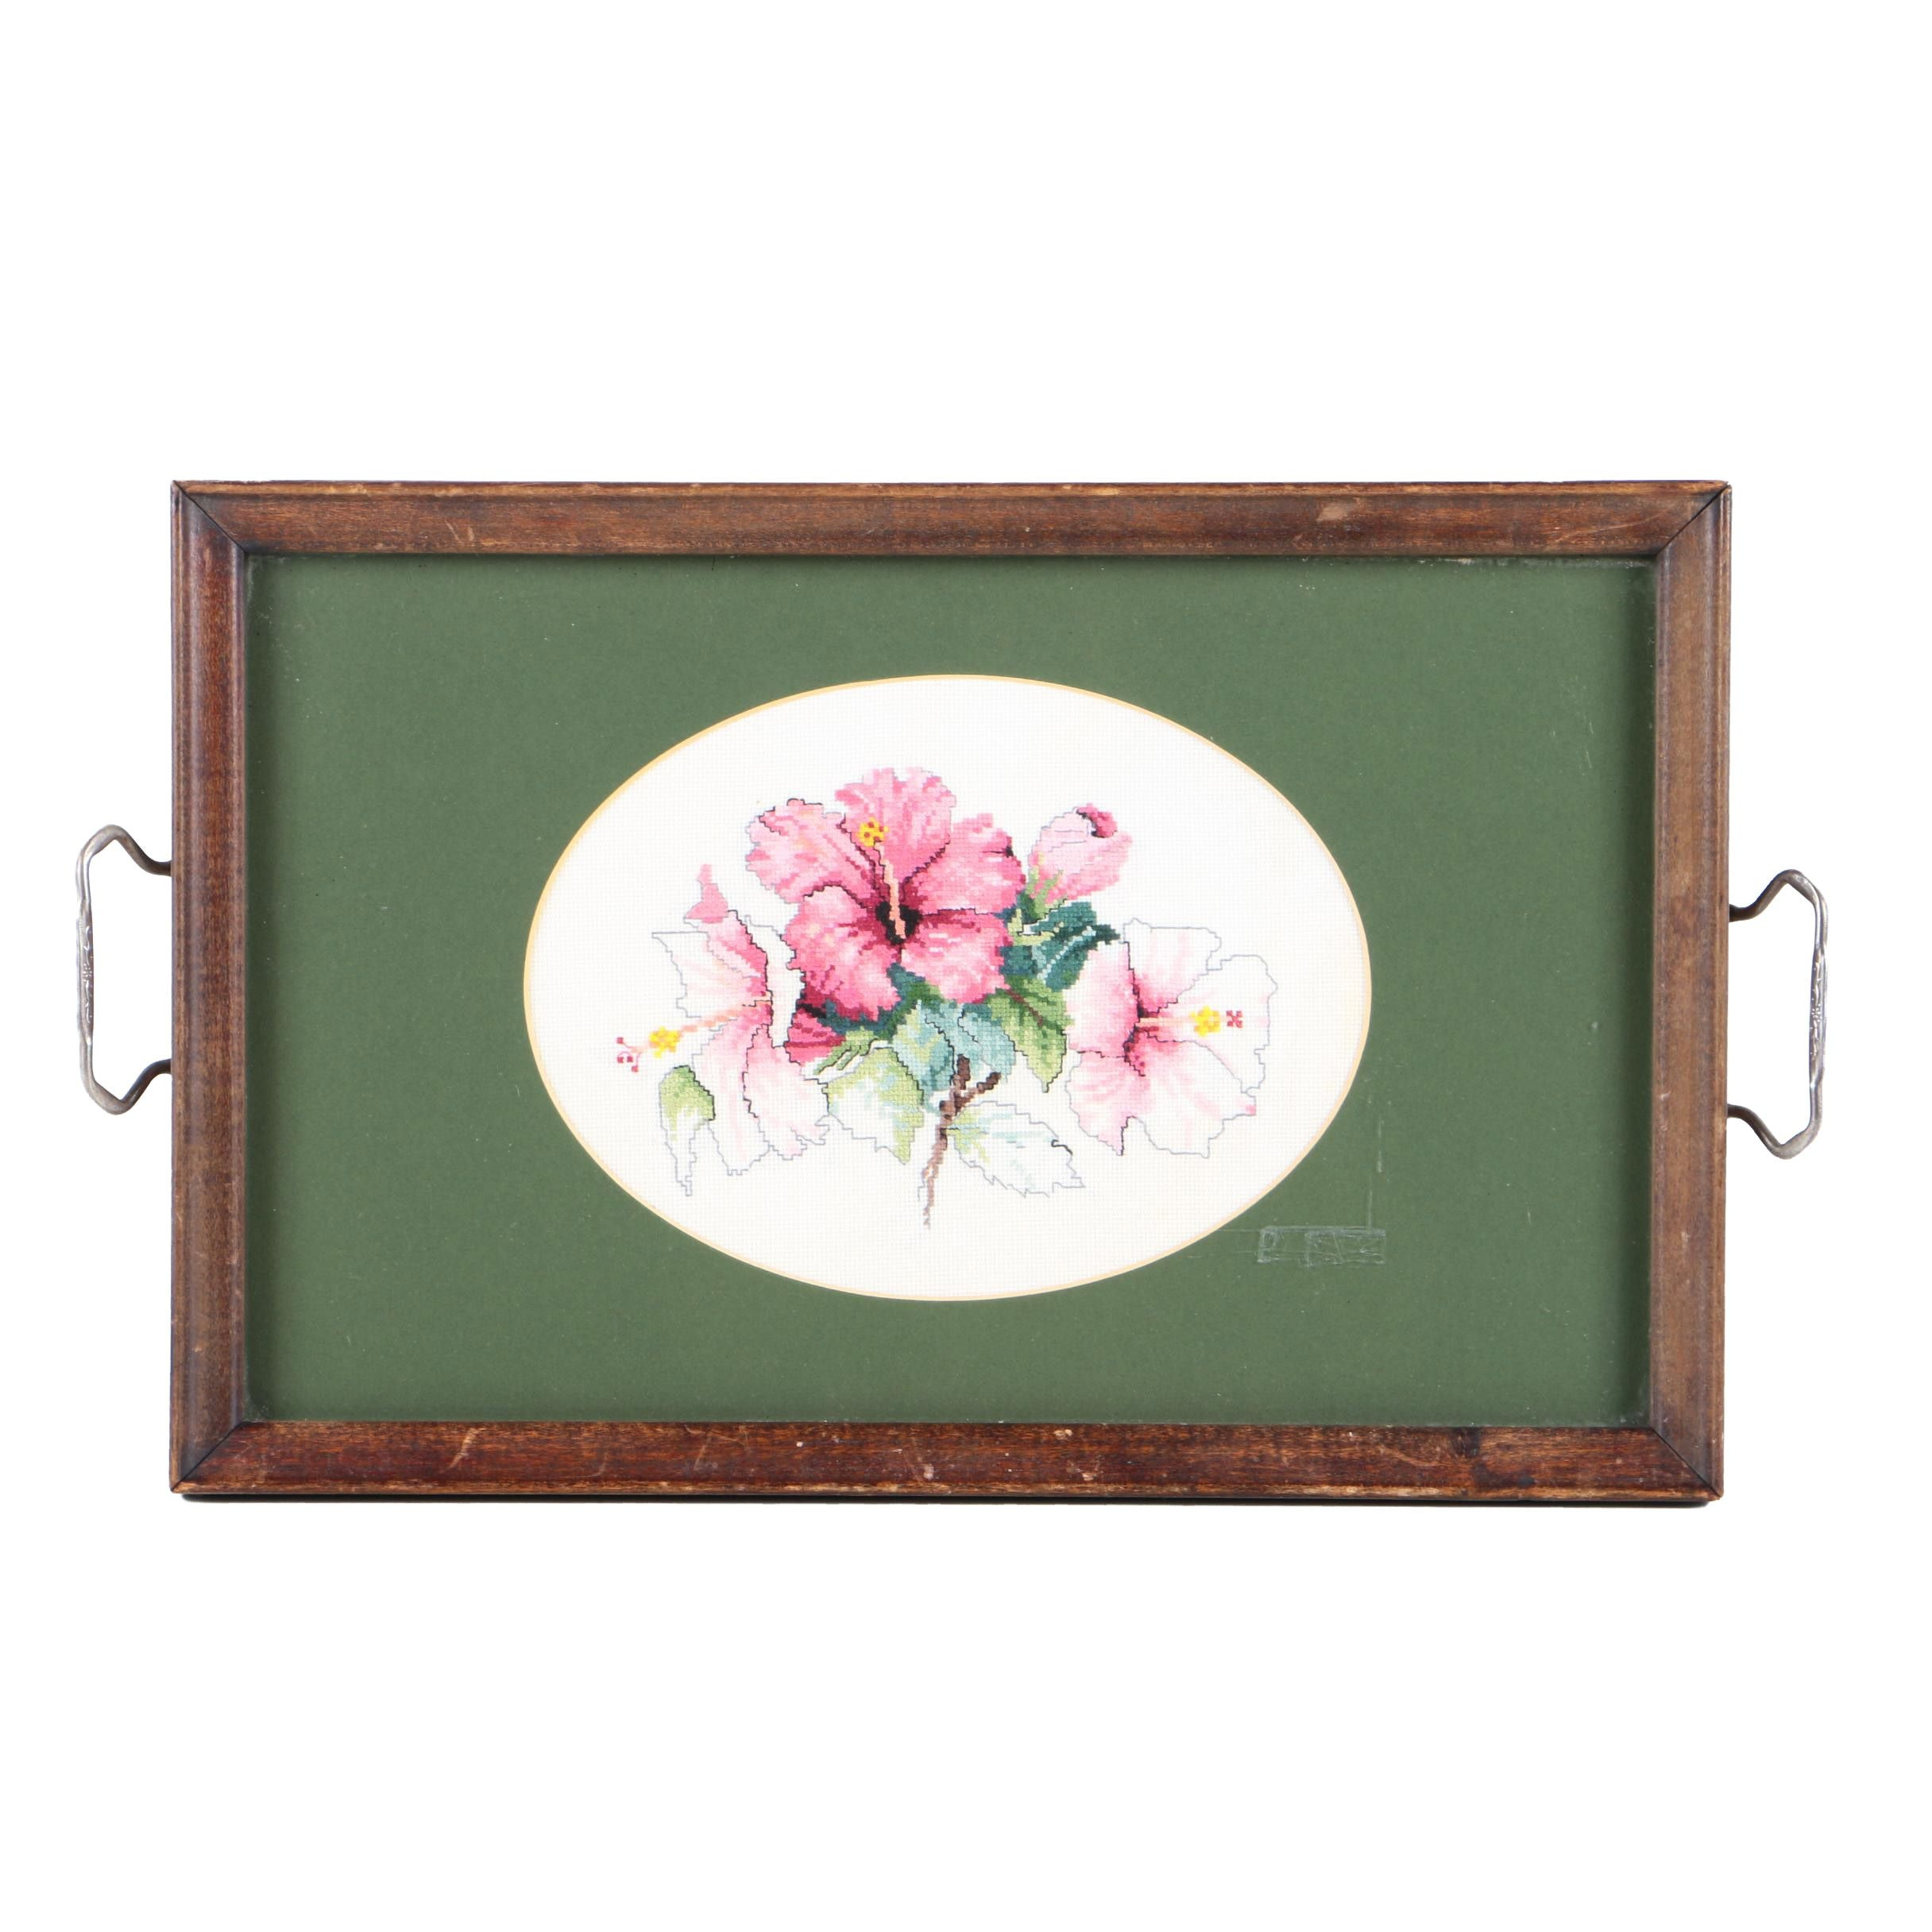 Tray with Cross-Stitch of Flowers